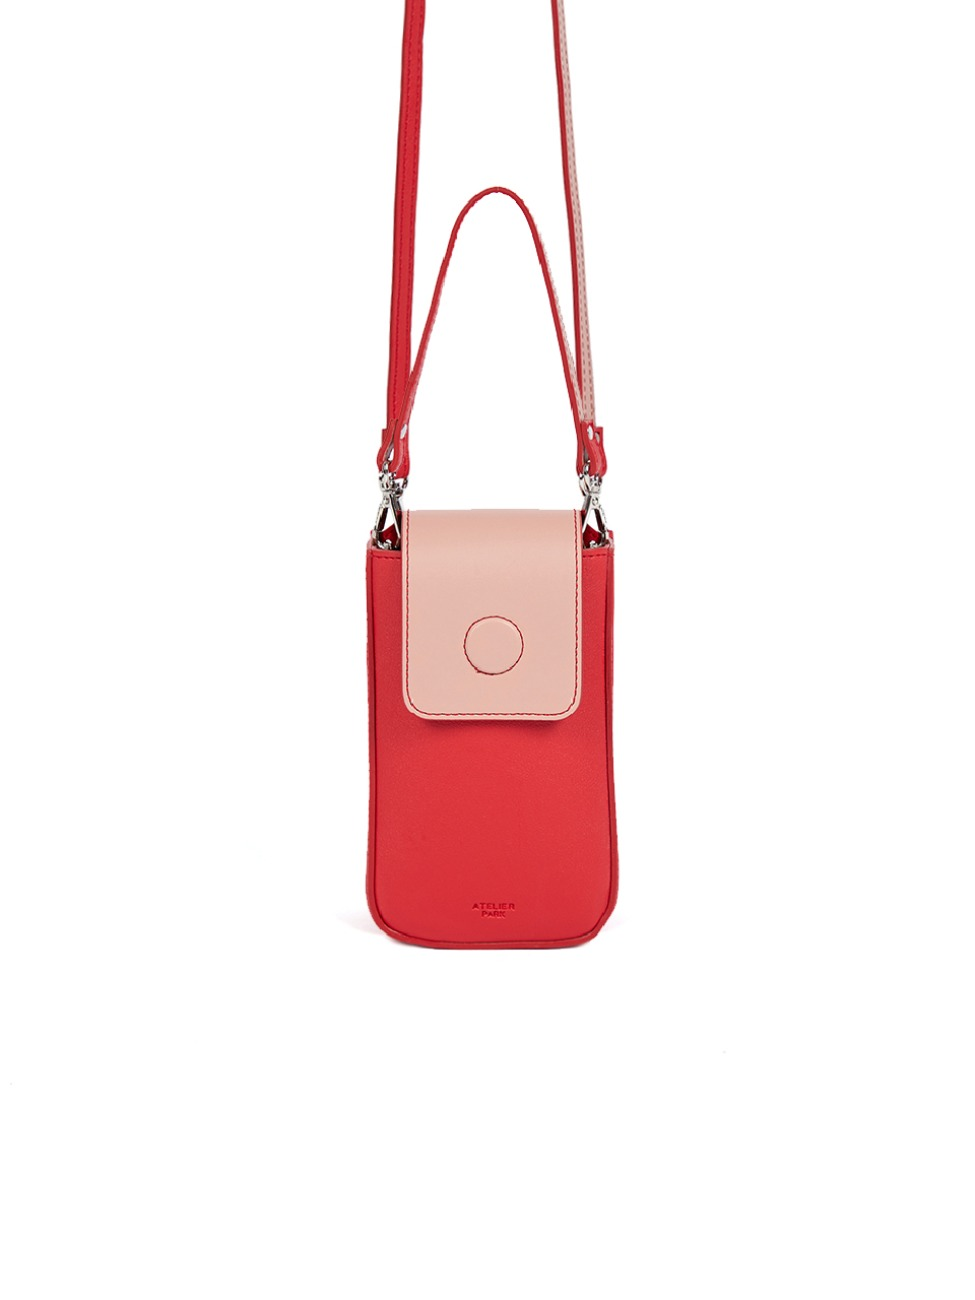 [재입고 미정] BLOCK NANO BAG_ RED